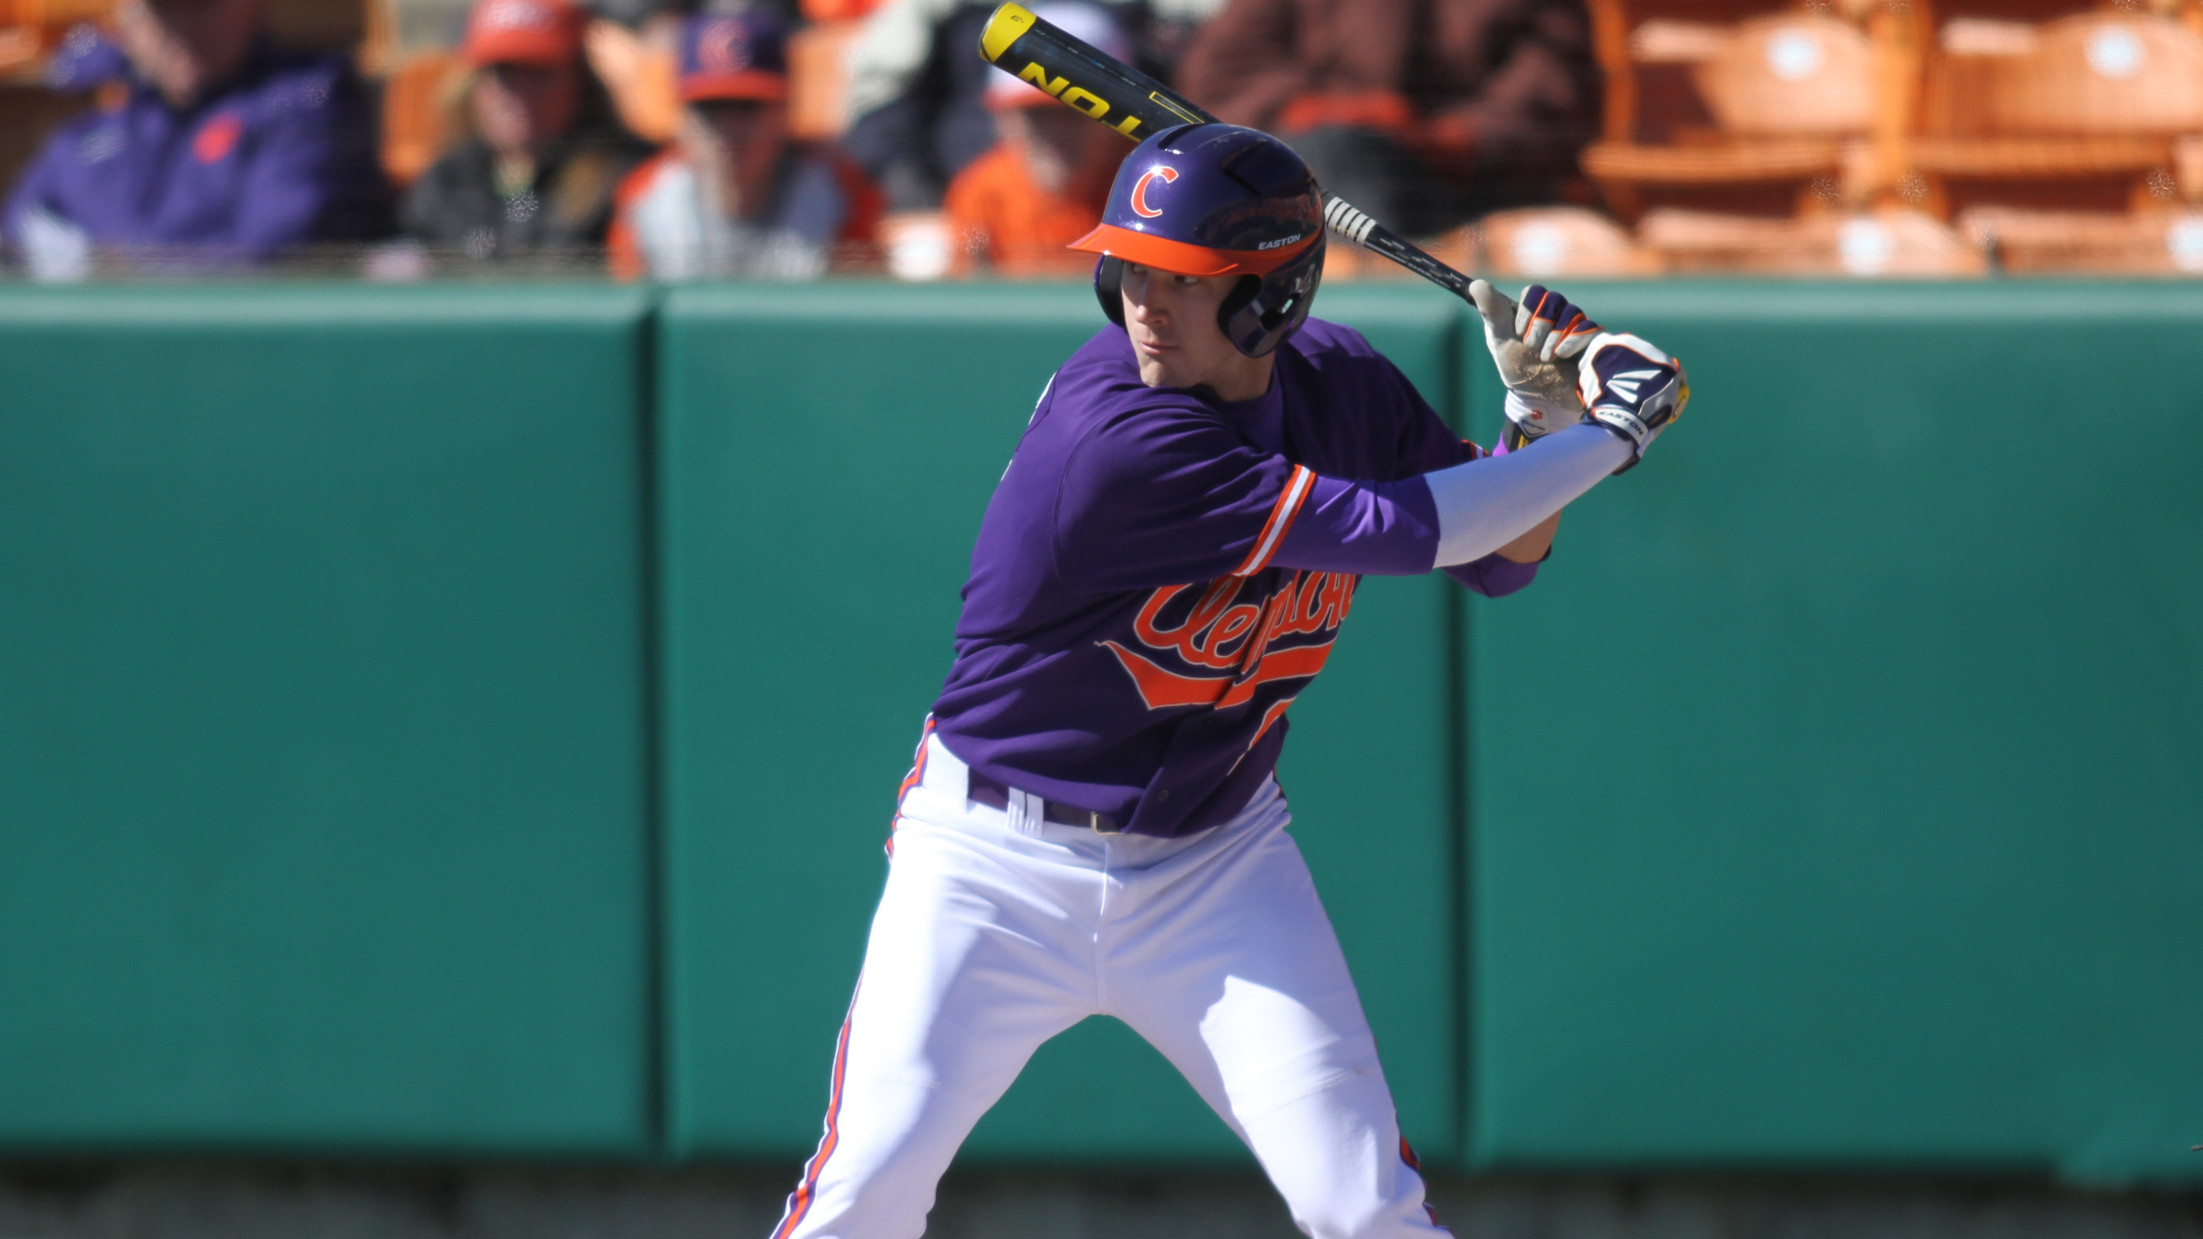 Clemson Baseball Team to Play Host to Wright State Friday-Sunday